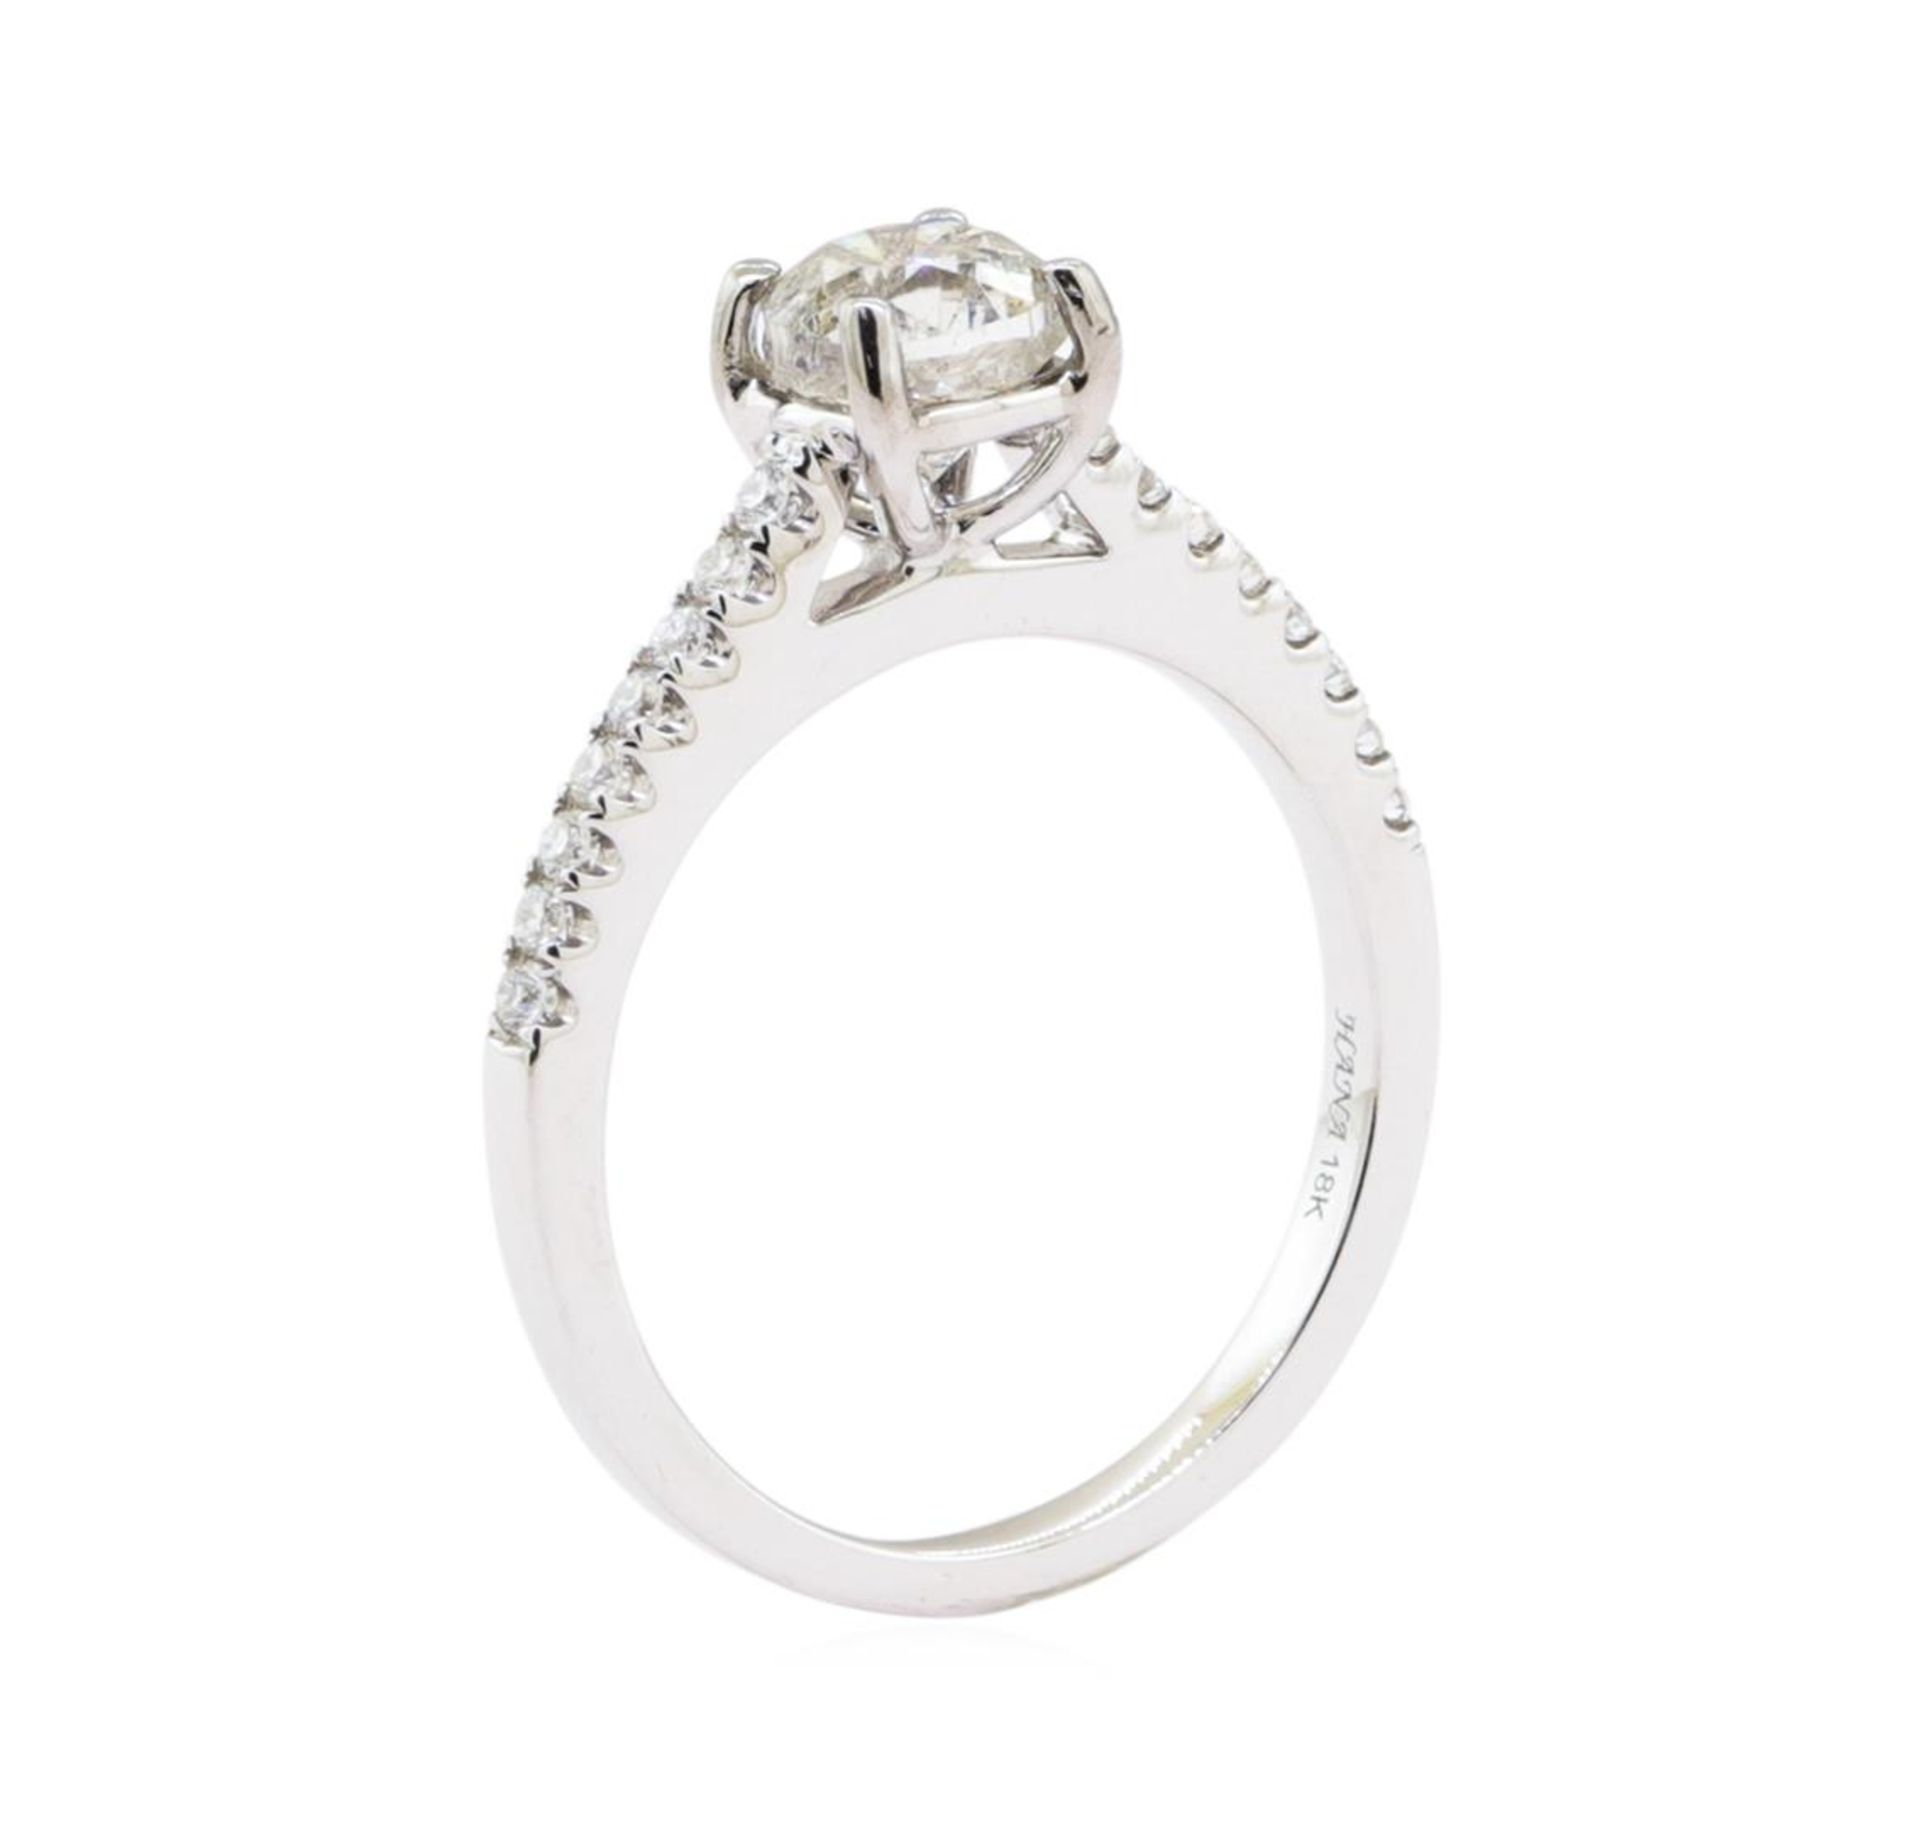 1.07ct Diamond Ring - 18KT White Gold - Image 4 of 4